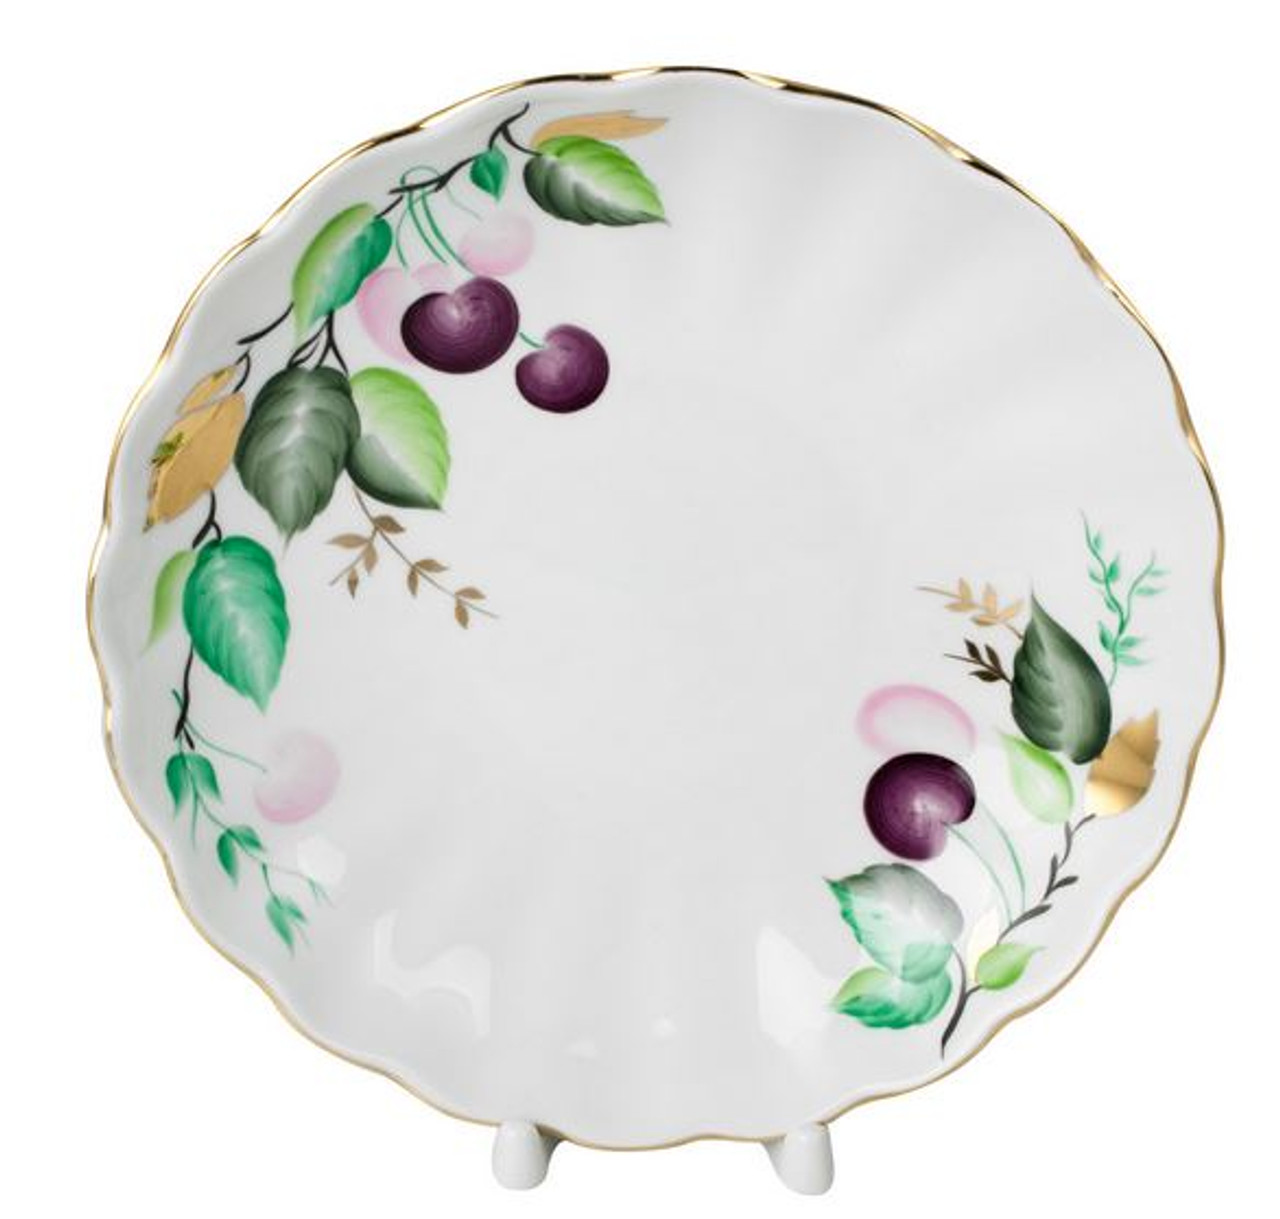 Cherry Serving Plate